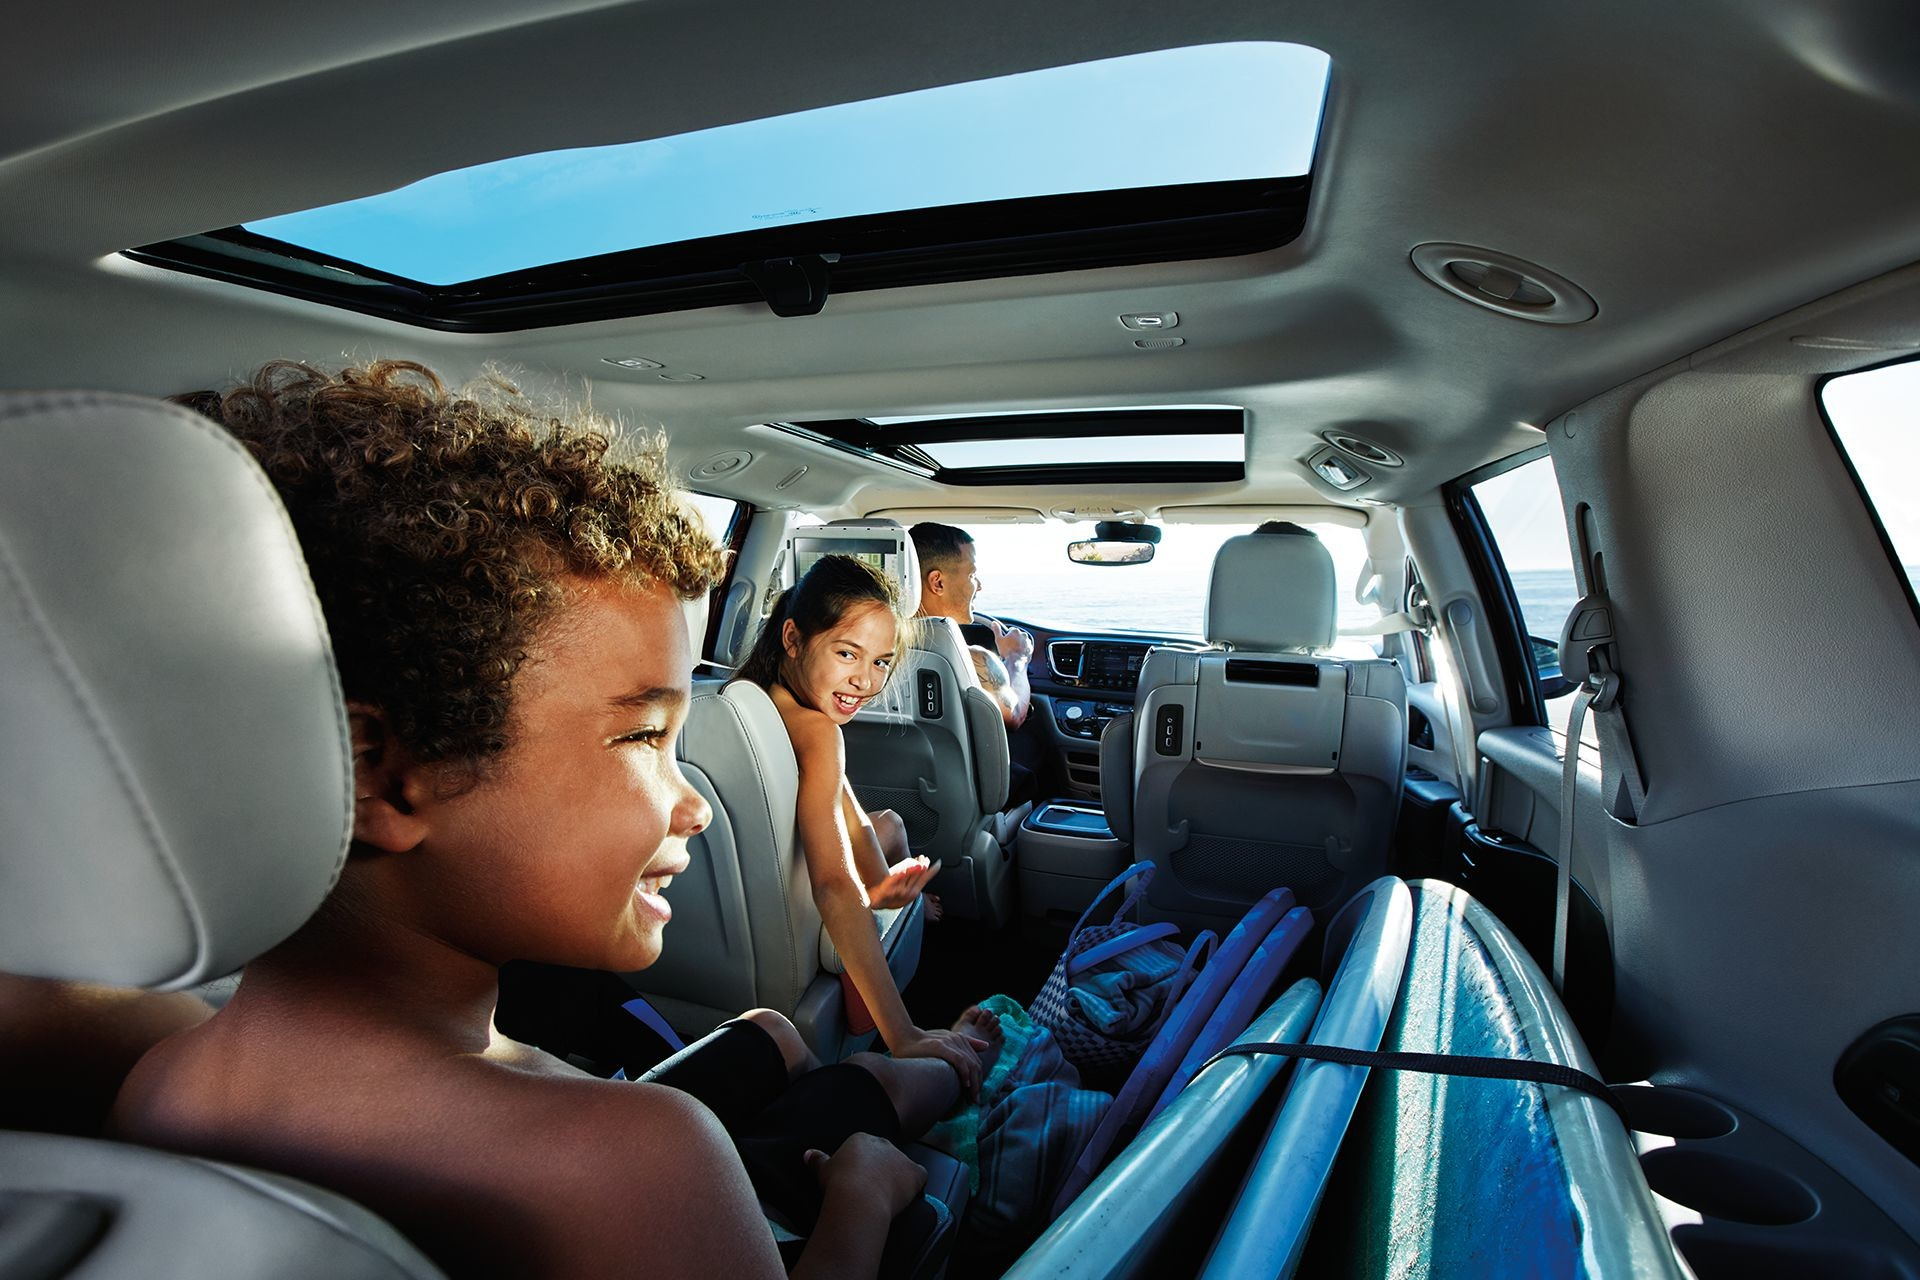 2019 Chrysler Pacifica surfboard placed next to 2 children